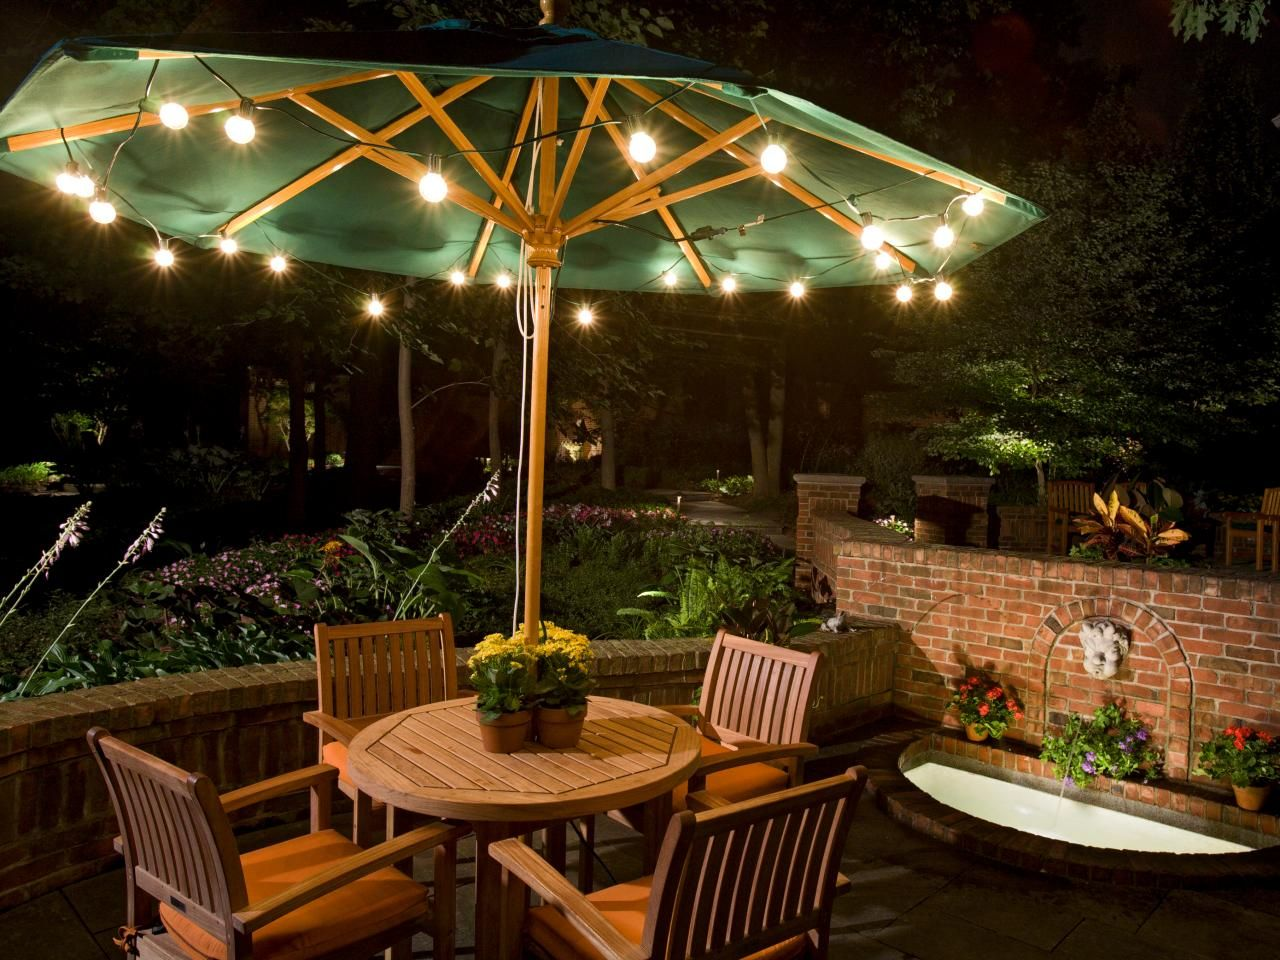 Outdoor Landscape Lighting | Outdoor string lighting, Lights and ...